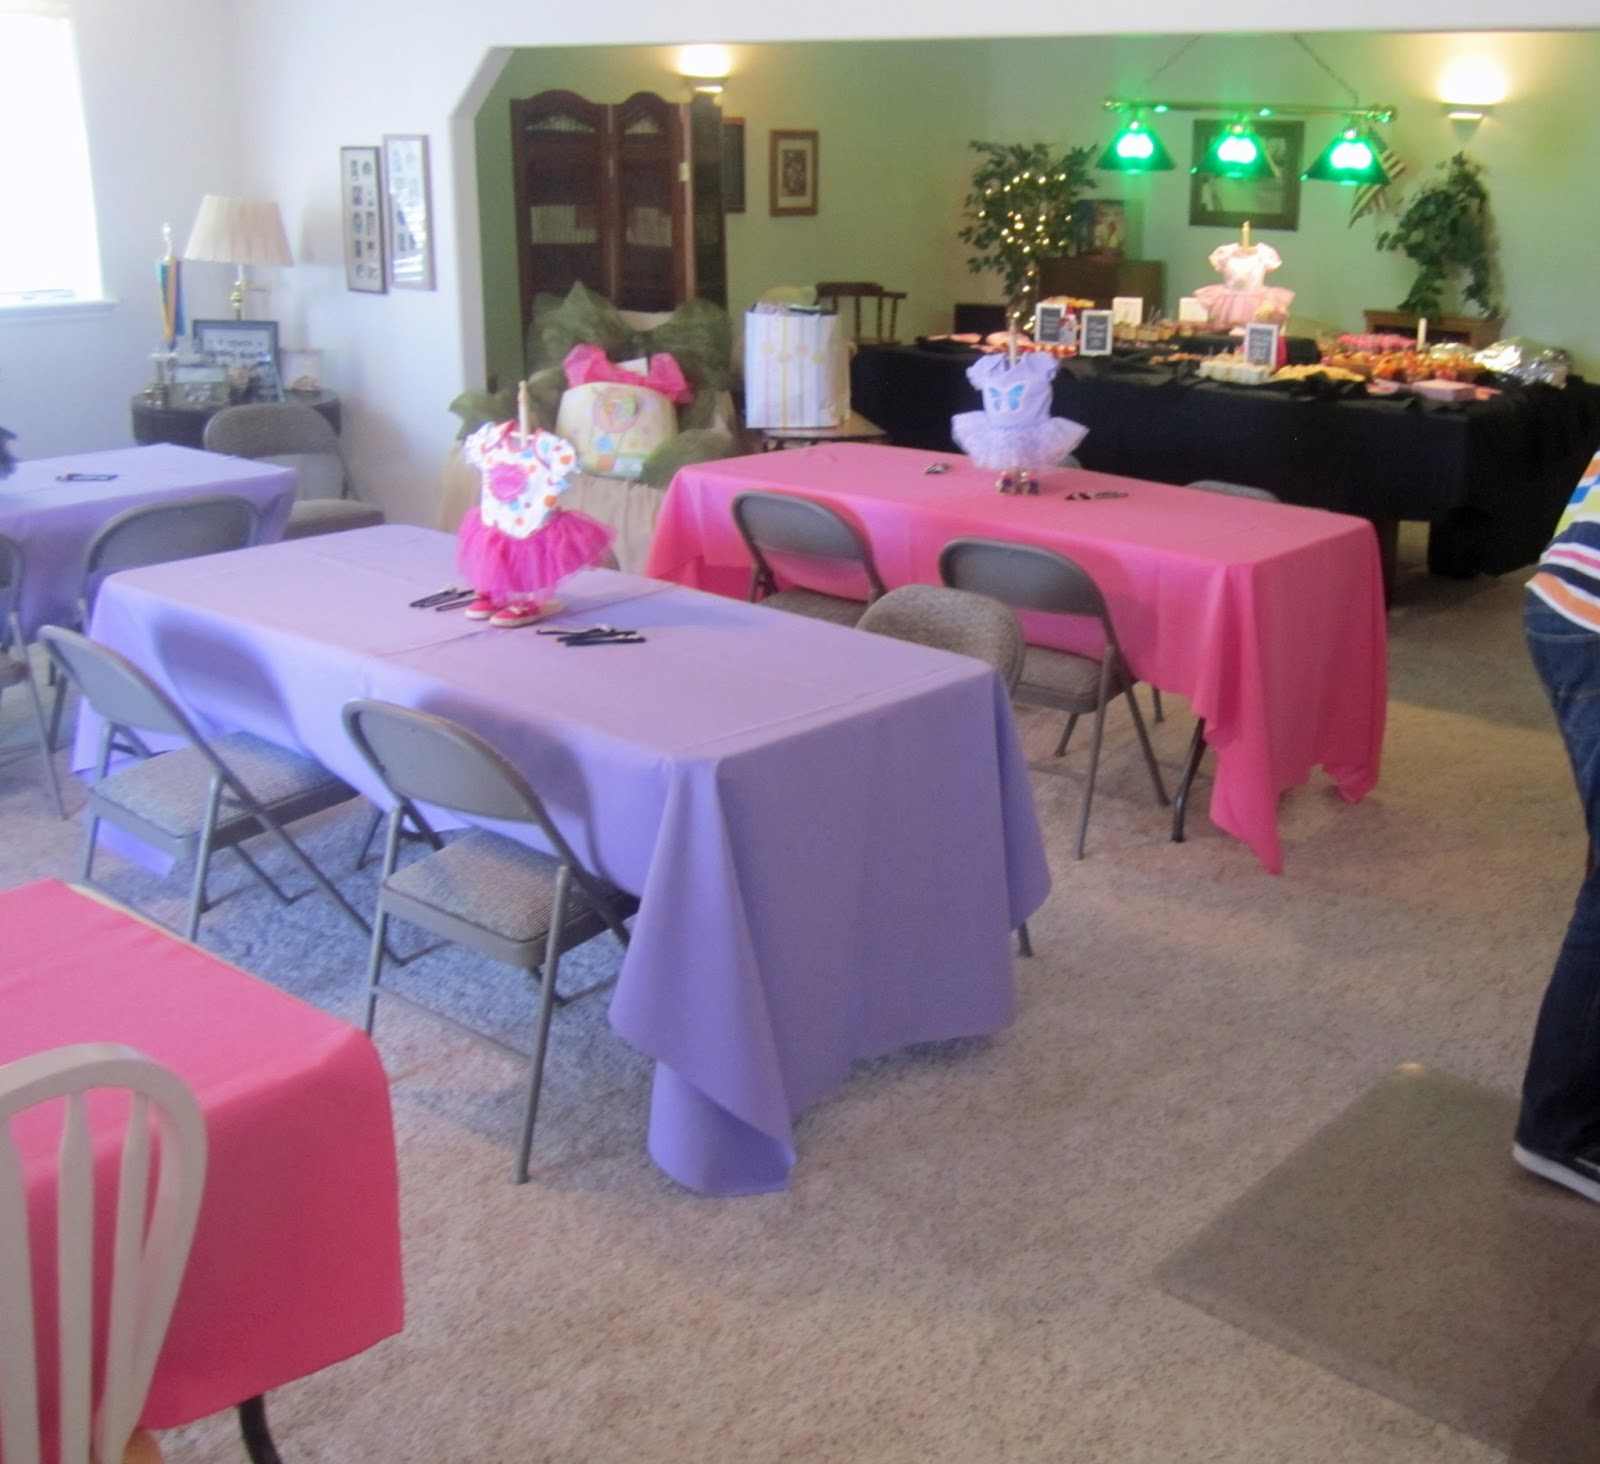 Uncategorized Tutu Centerpieces For Baby Shower Inking Idaho Natalies Baby  Shower Each Centerpiece Was A Onsie